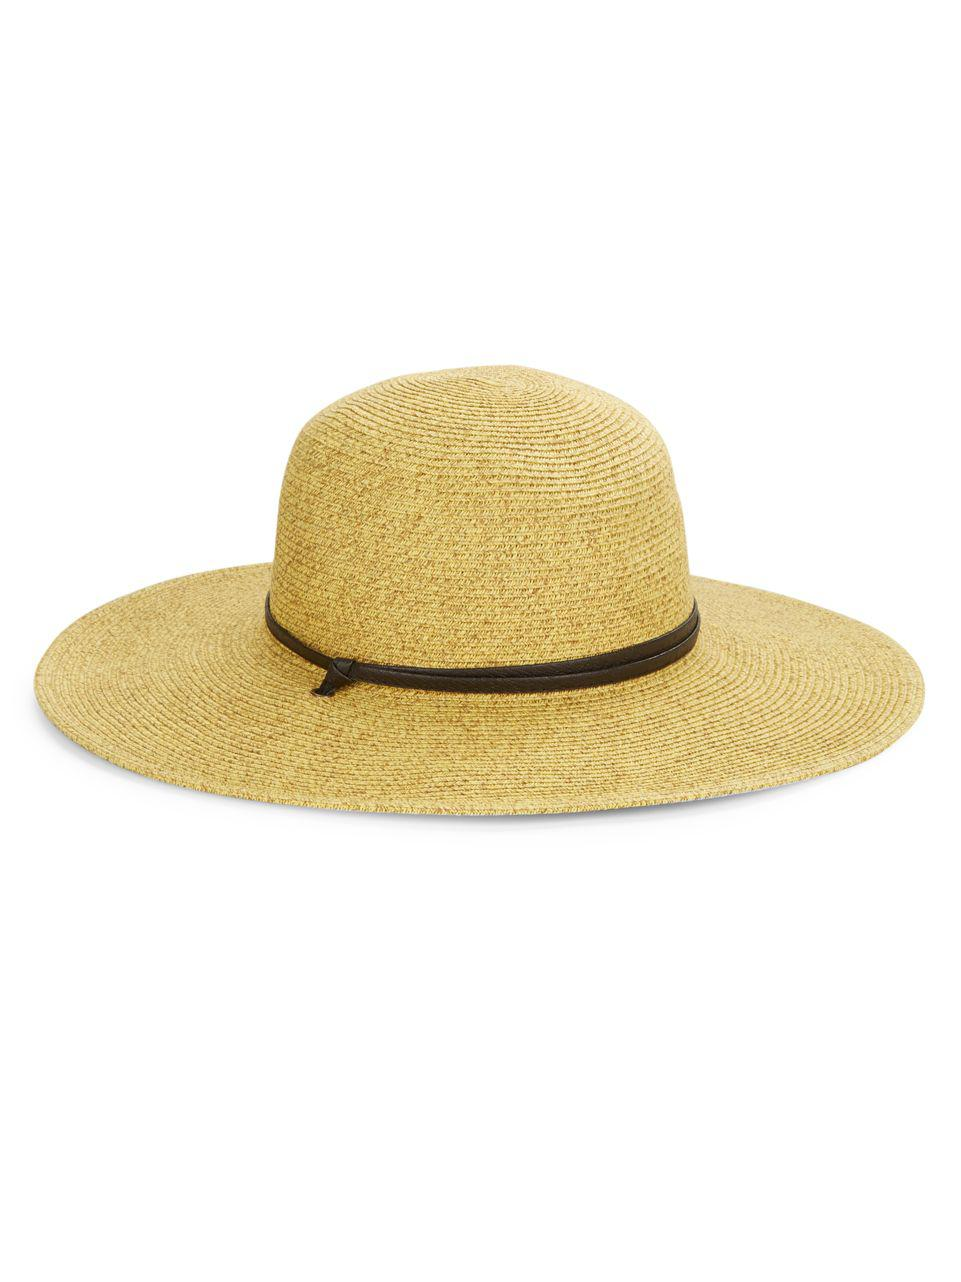 20c043412bf San Diego Hat Company Leather Banded Rancher in Yellow - Lyst